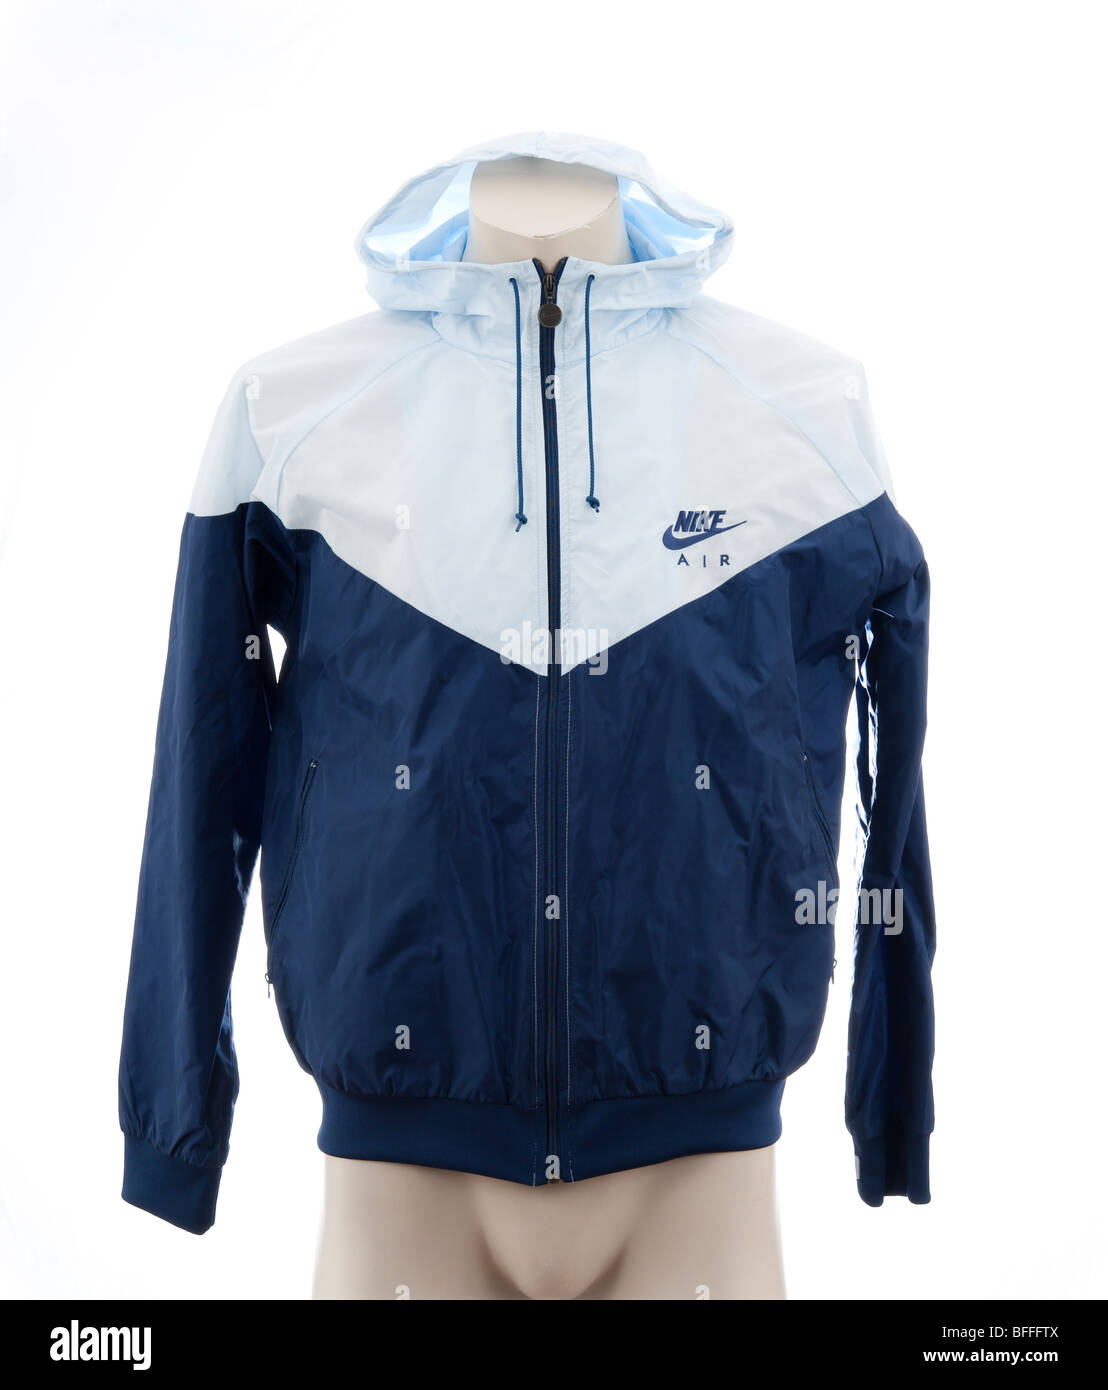 Giacca windrunner nike mens jacket, cagoule, giacca